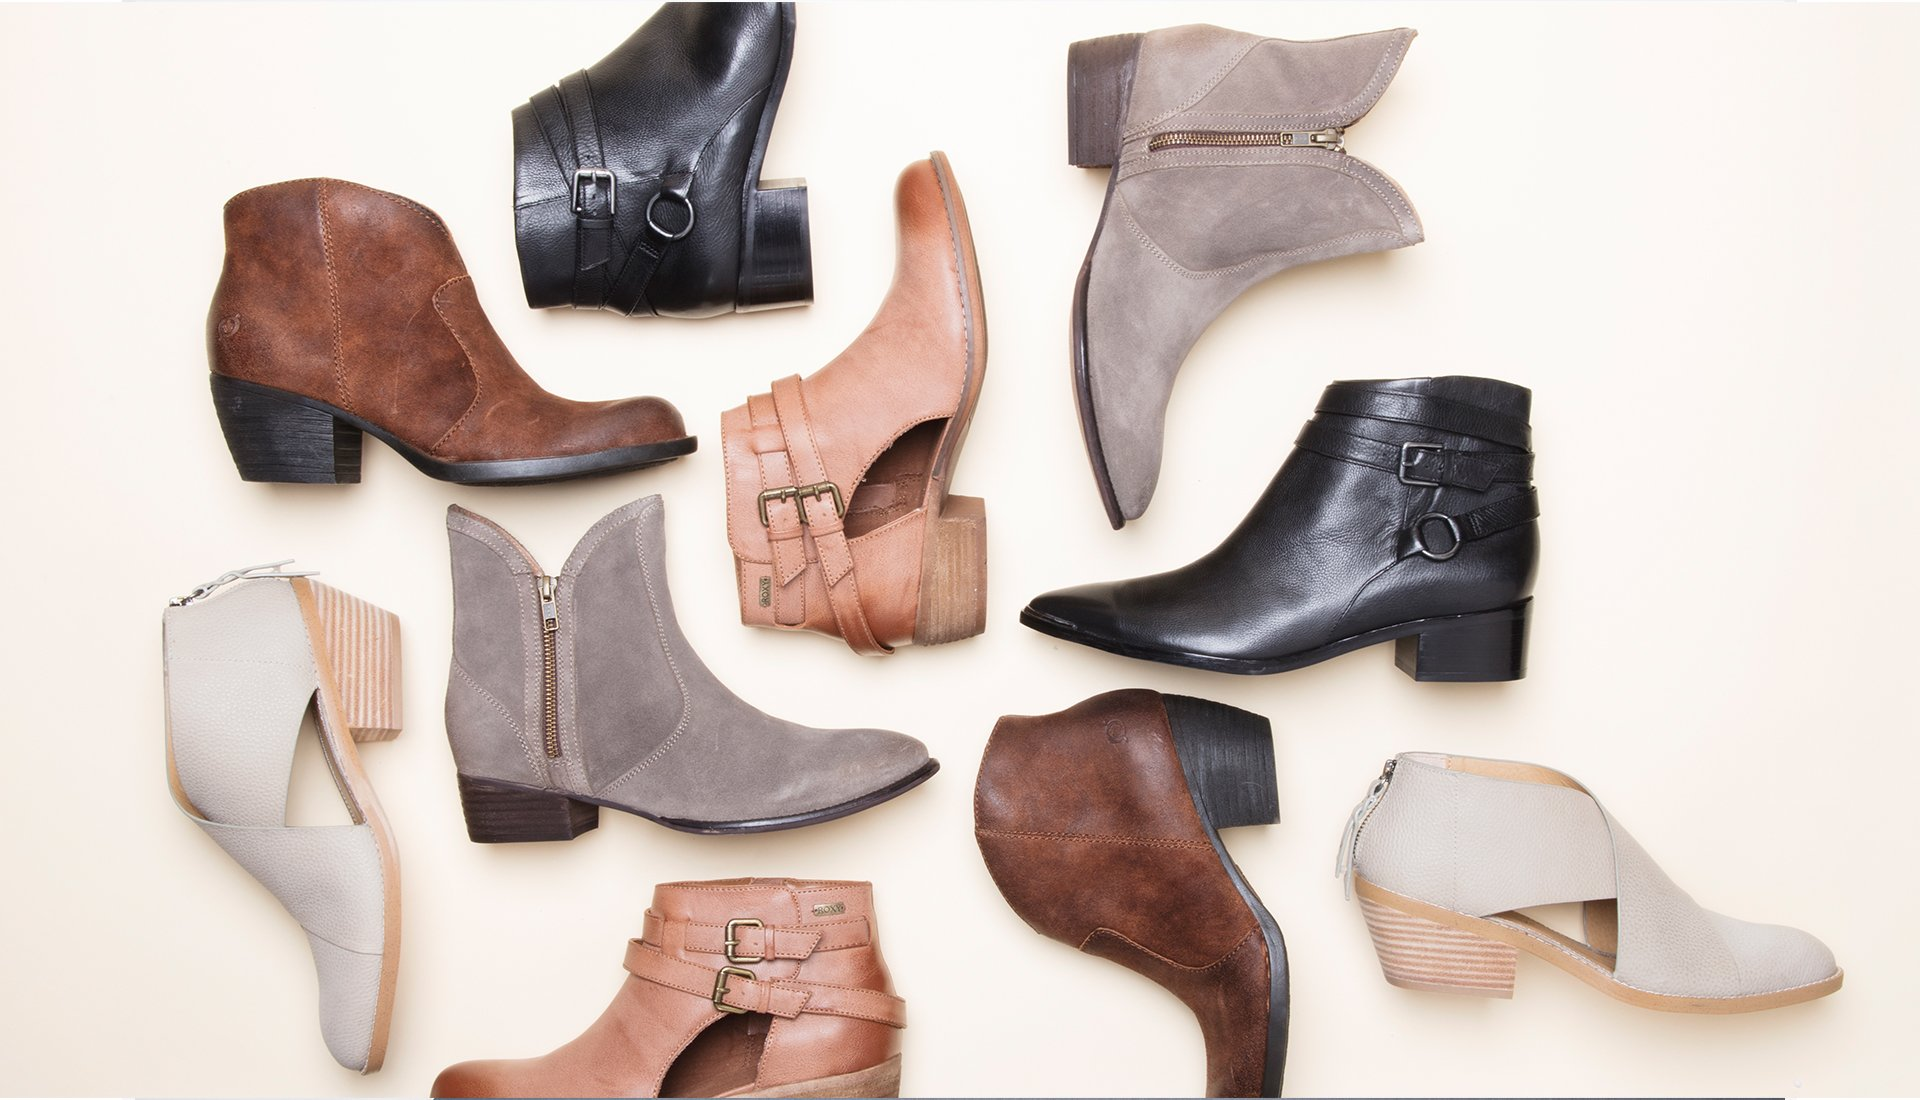 image of many types of boots